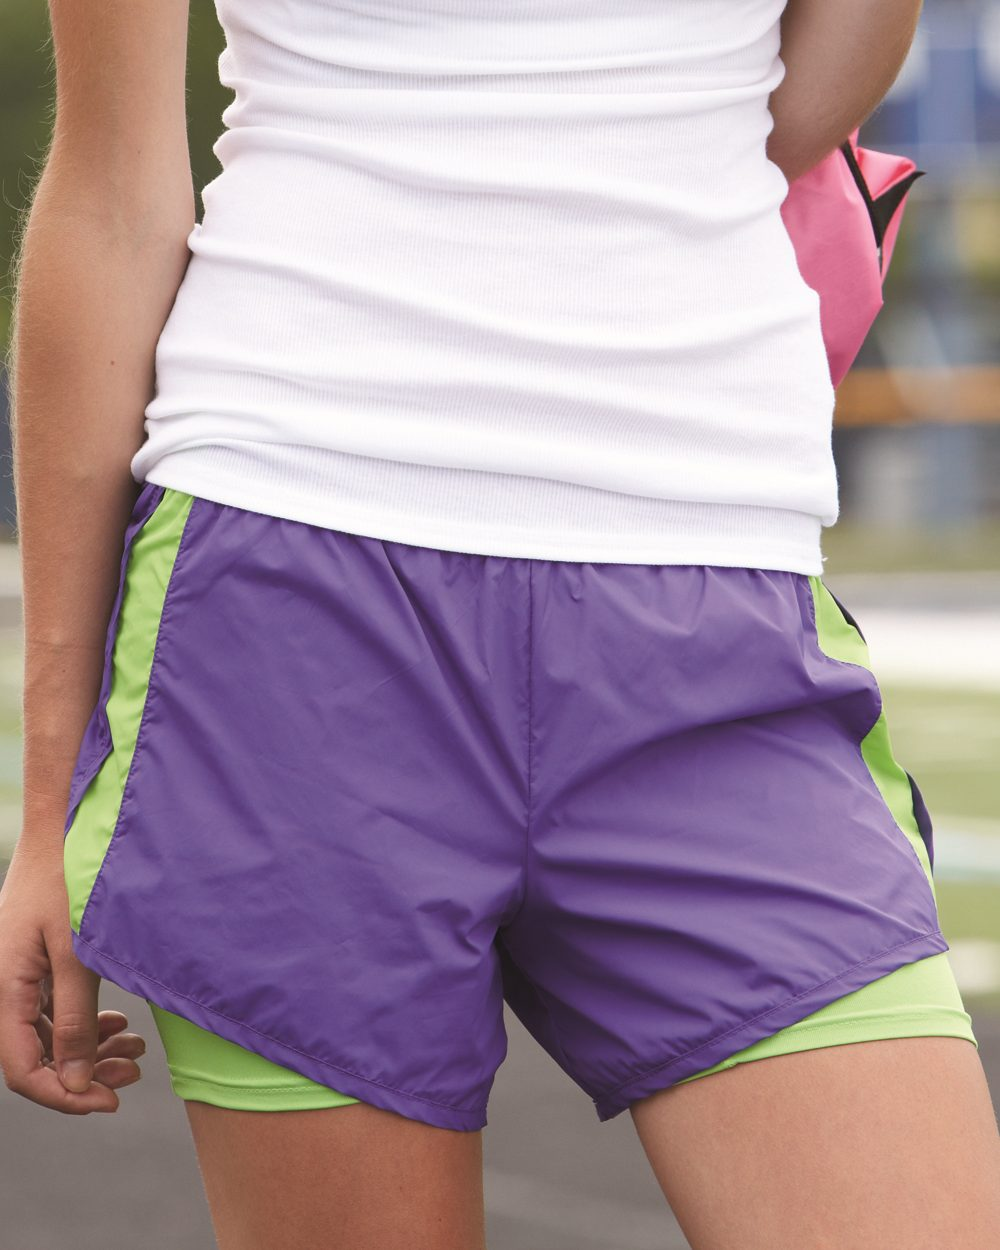 Boxercraft Ladies' Endurance Shorts - N64